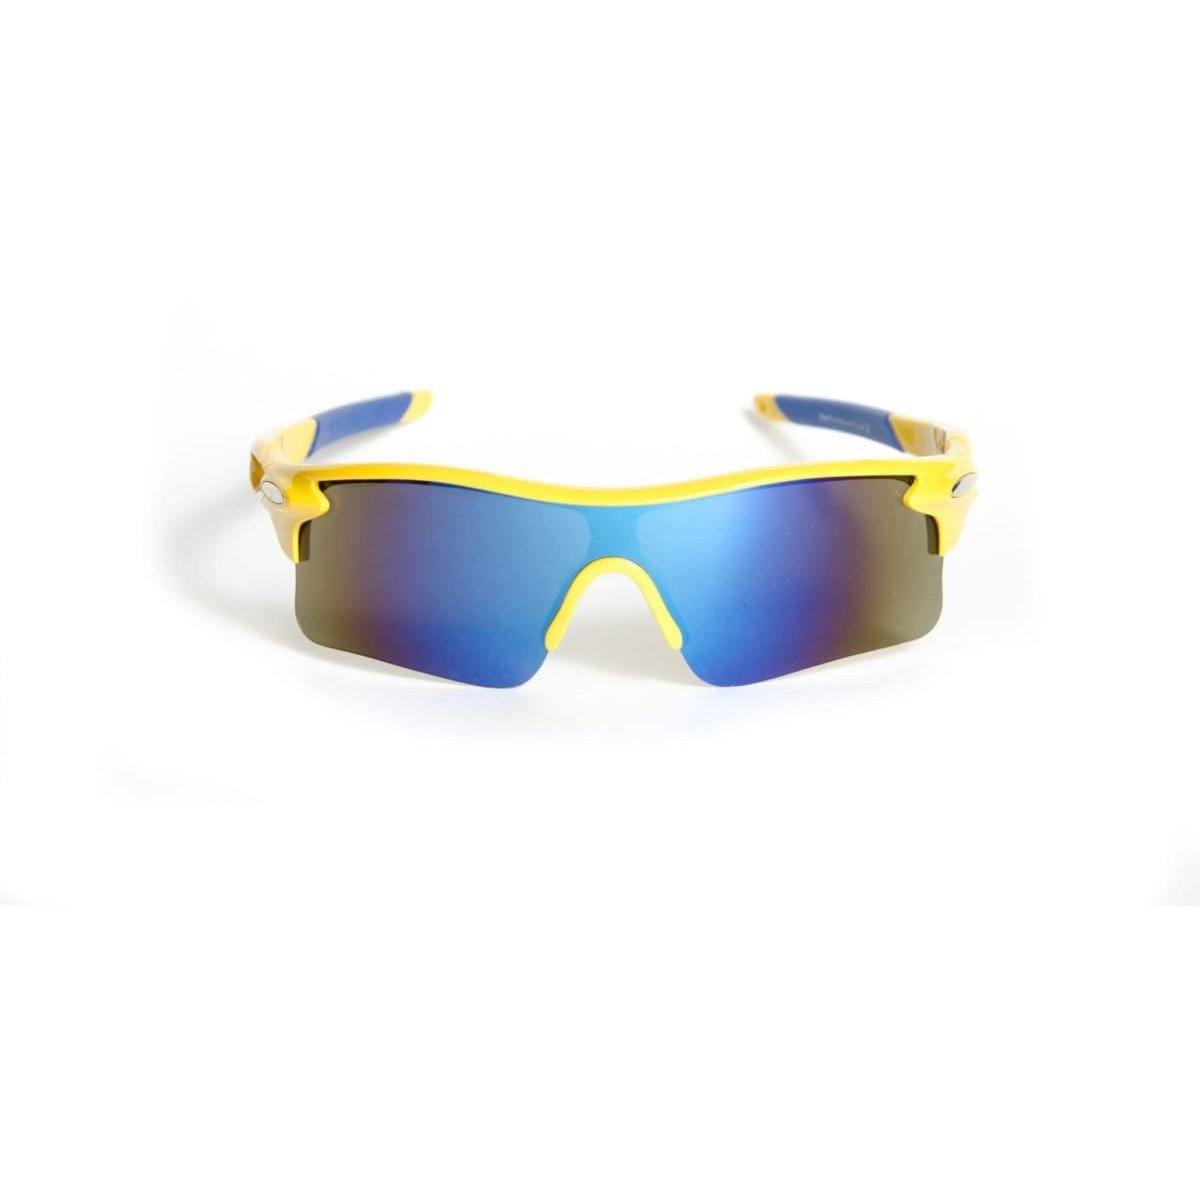 "Sports Sunglasses Designer Sunglasses Model ""The Runner"" By: The Ever Collection"